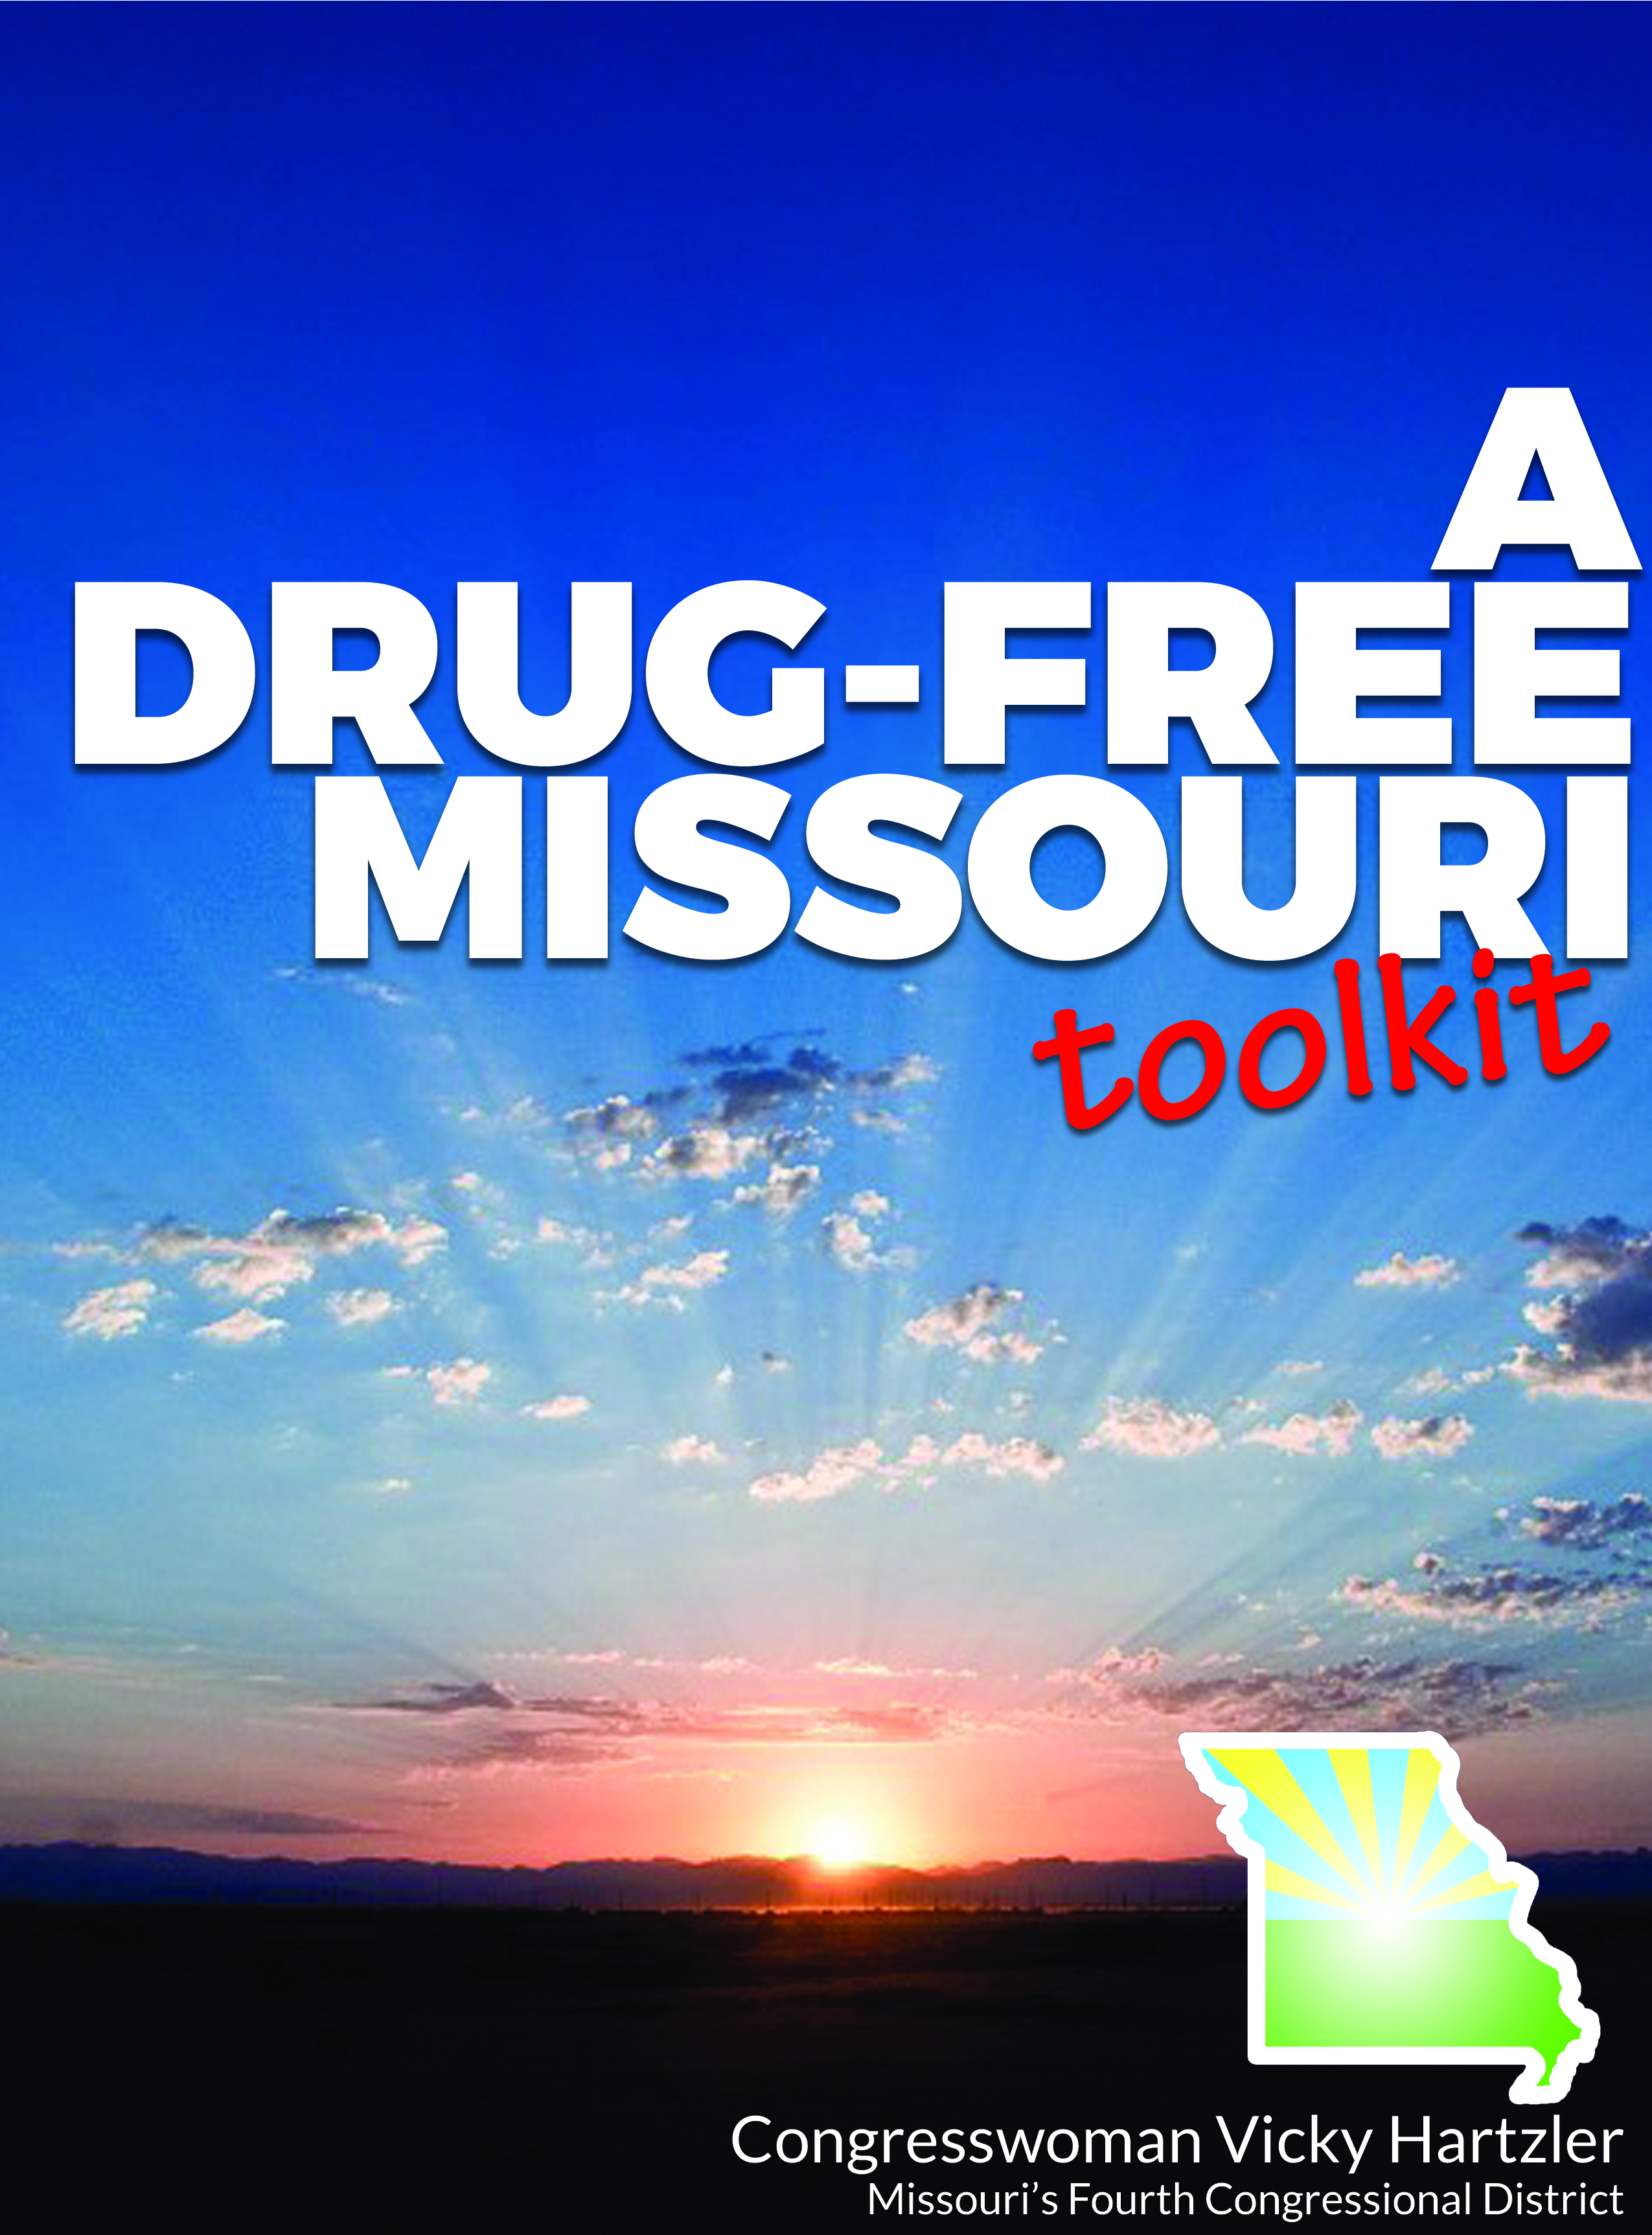 A drug free missouri future congresswoman vicky hartzler the toolkit click here to download a digital copy of the drug free missouri toolkit fandeluxe Gallery